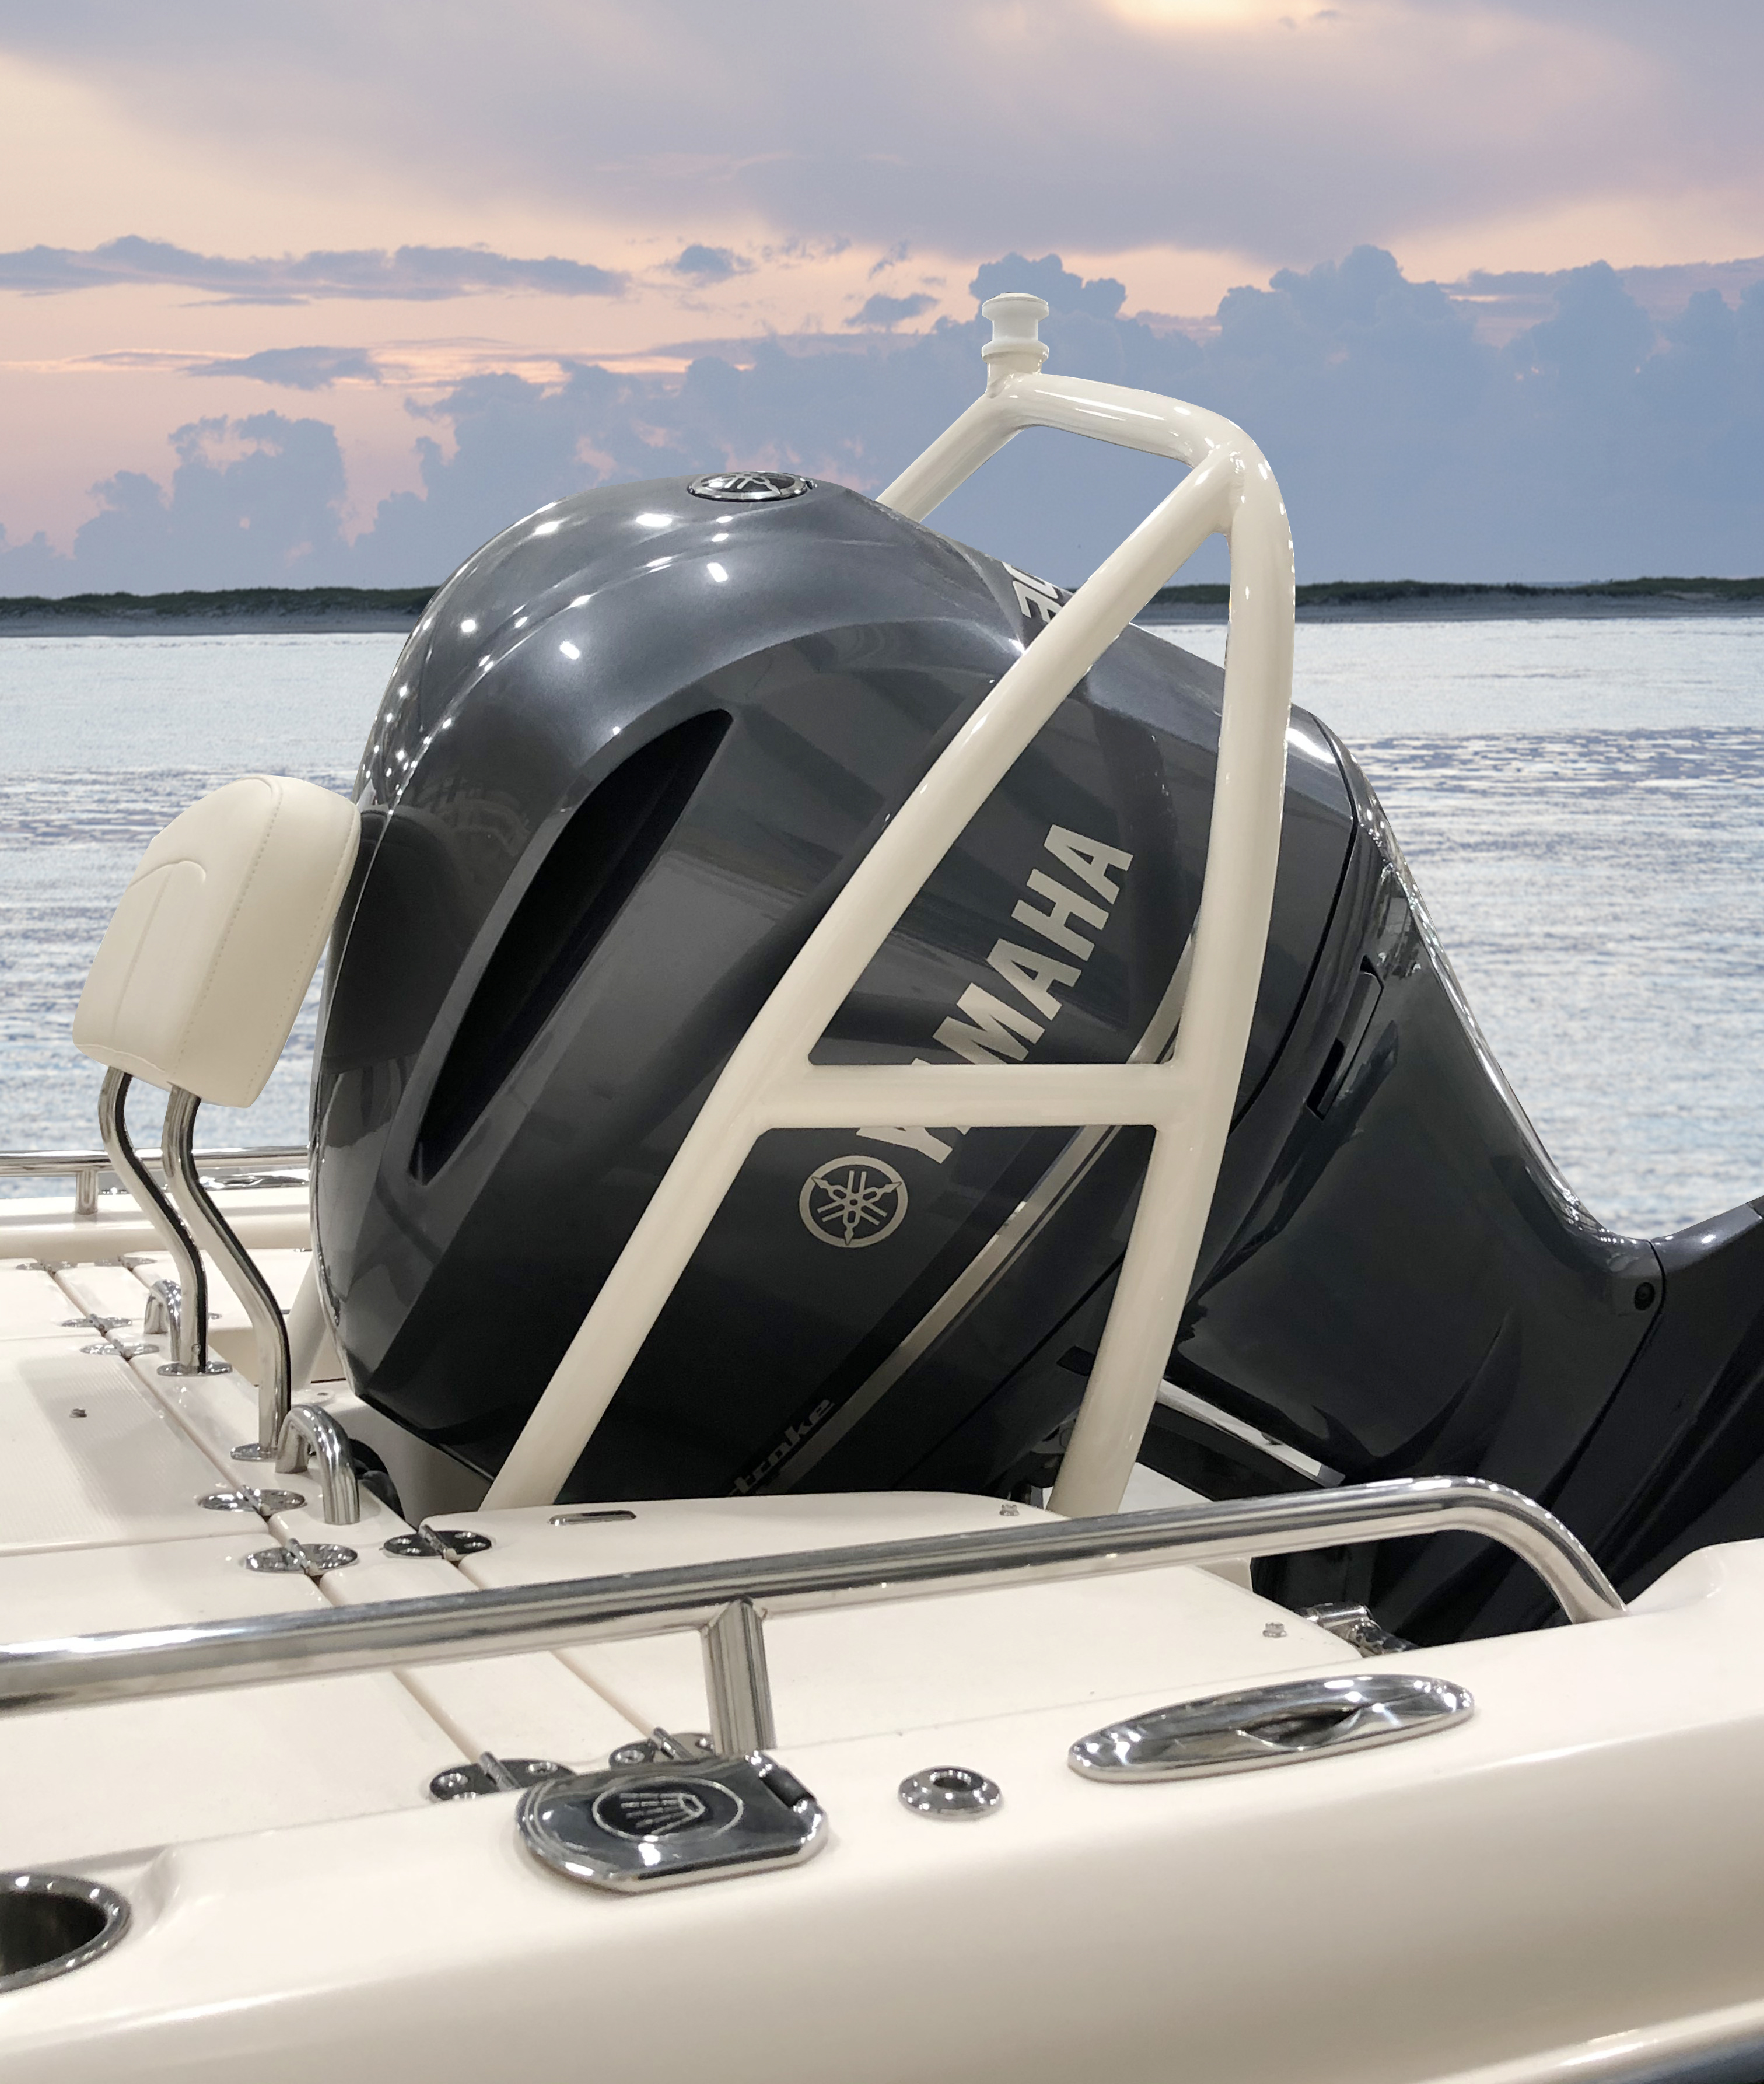 Grady-White Coastal Explorer 251, 25-foot bay boat with permanently mounted ski arch